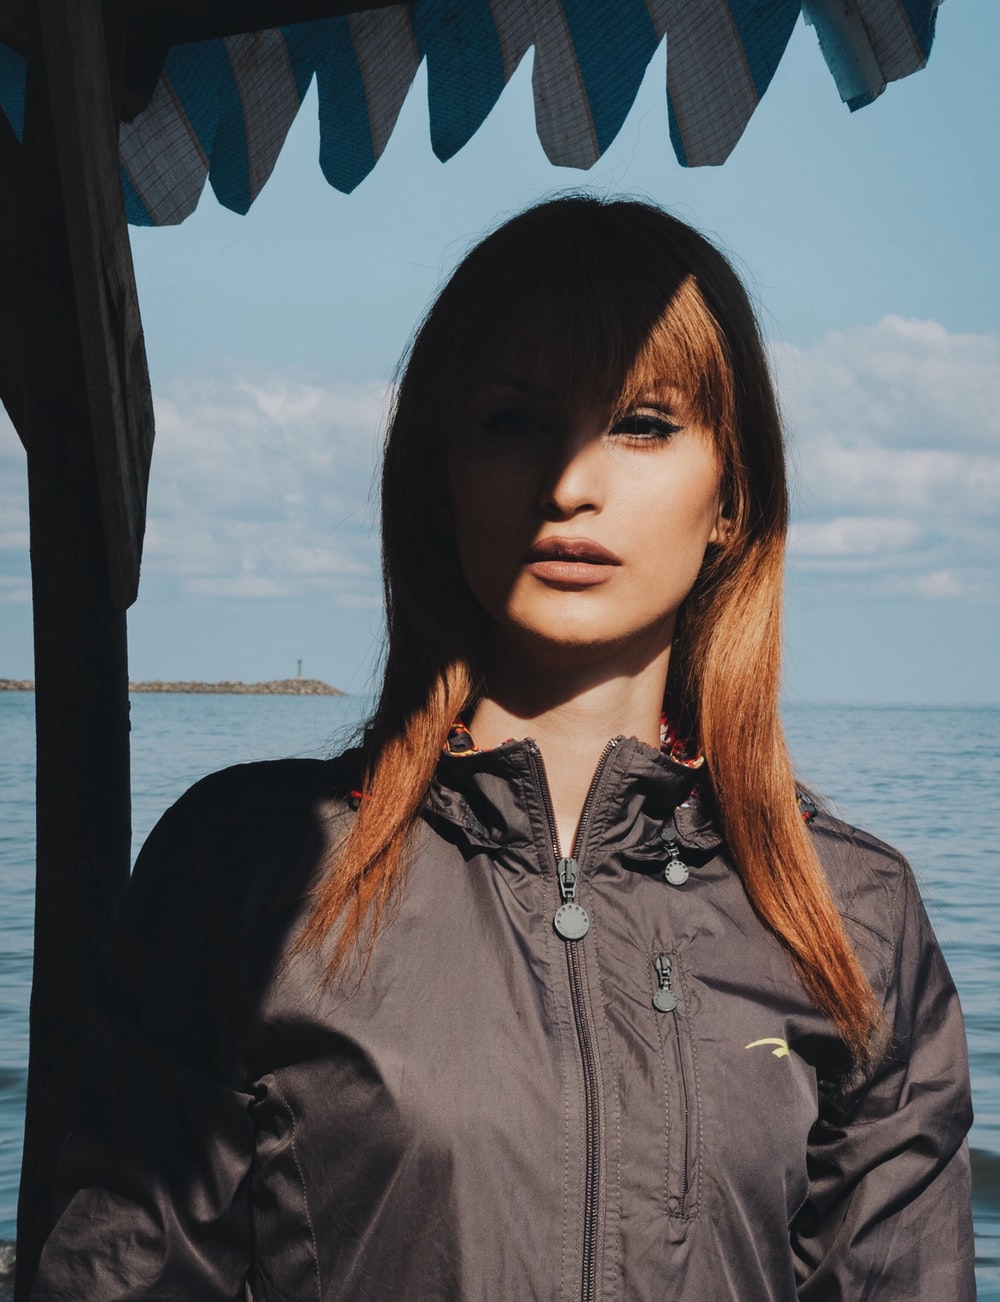 woman in black jacket standing on dock under cloudy sky during daytime